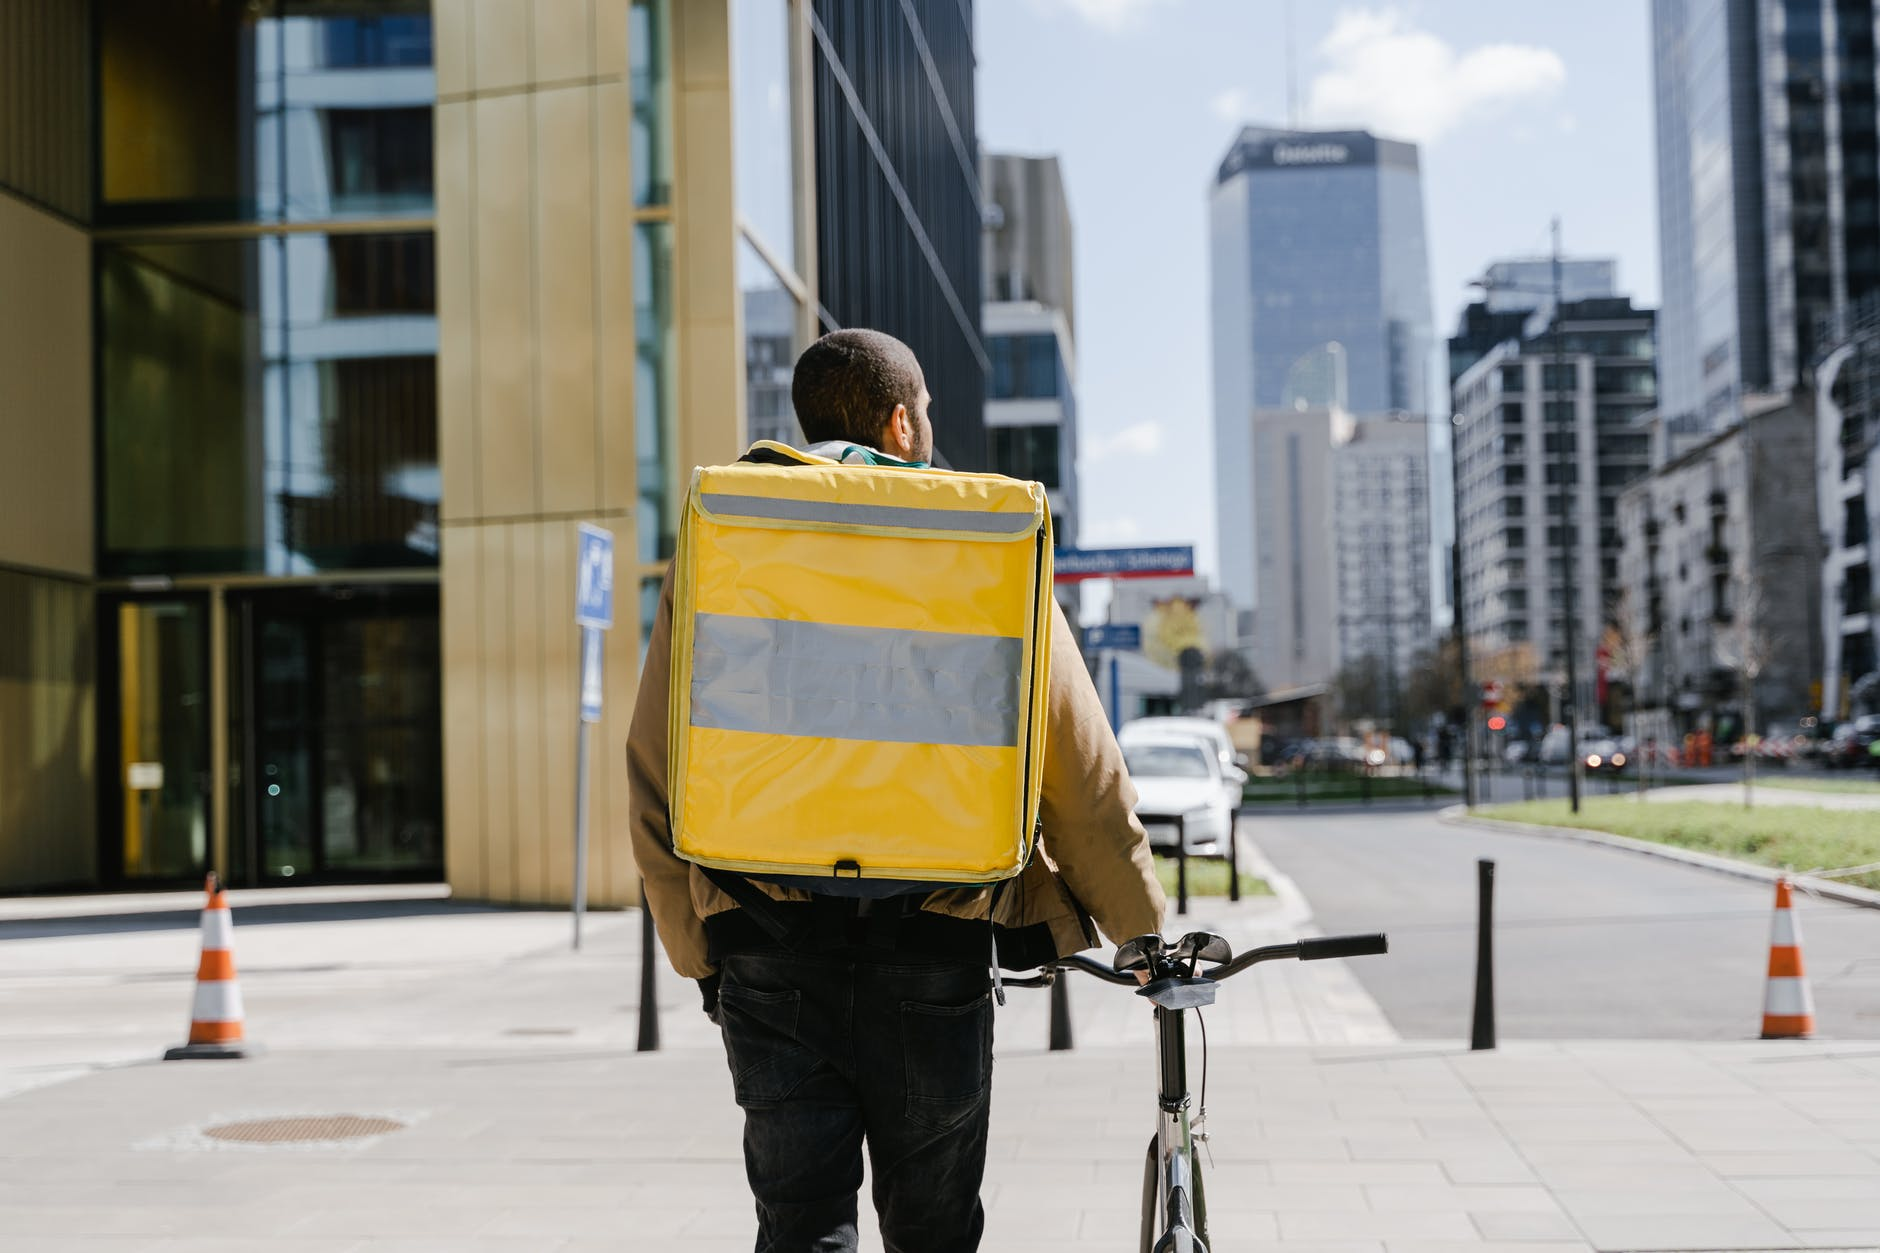 man in yellow jacket and black pants with yellow backpack walking on sidewalk